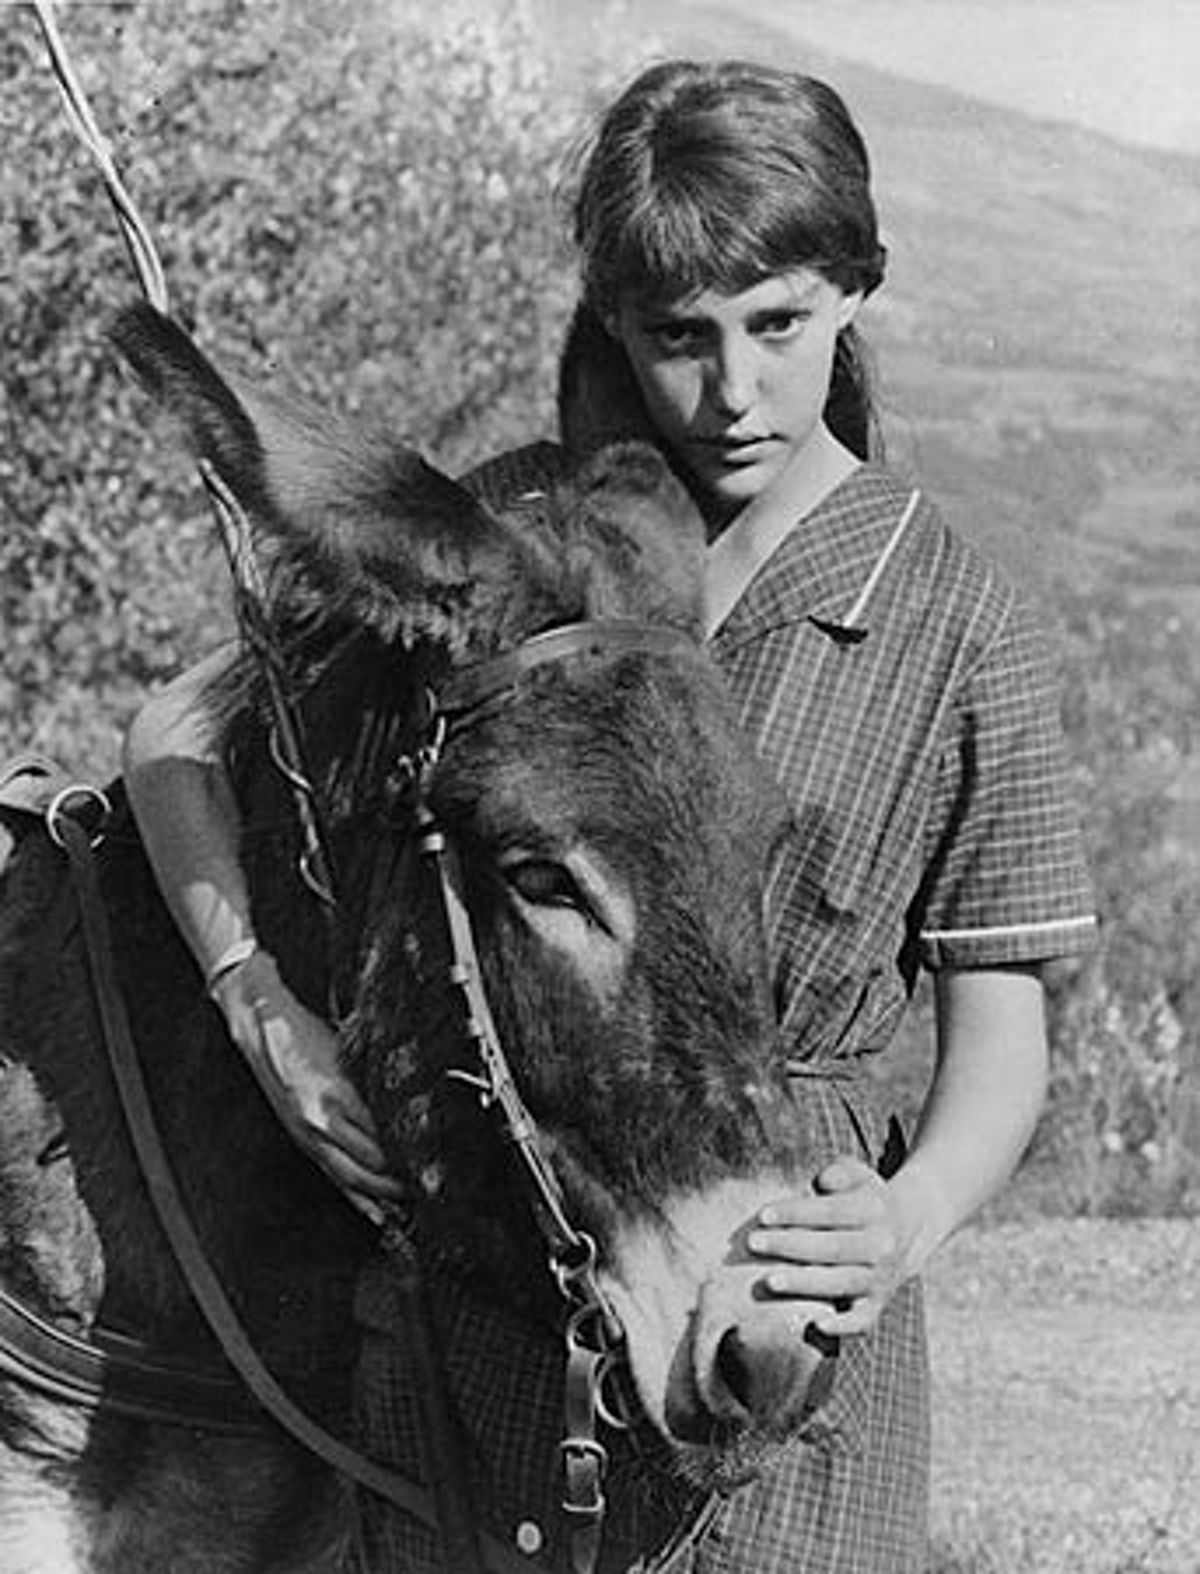 burro genius summary by folio weekly issuu burro genius blog  au hasard balthazar directed by robert bresson starring au hasard balthazar 1947 directed by robert bresson book web sampler burro genius paperback